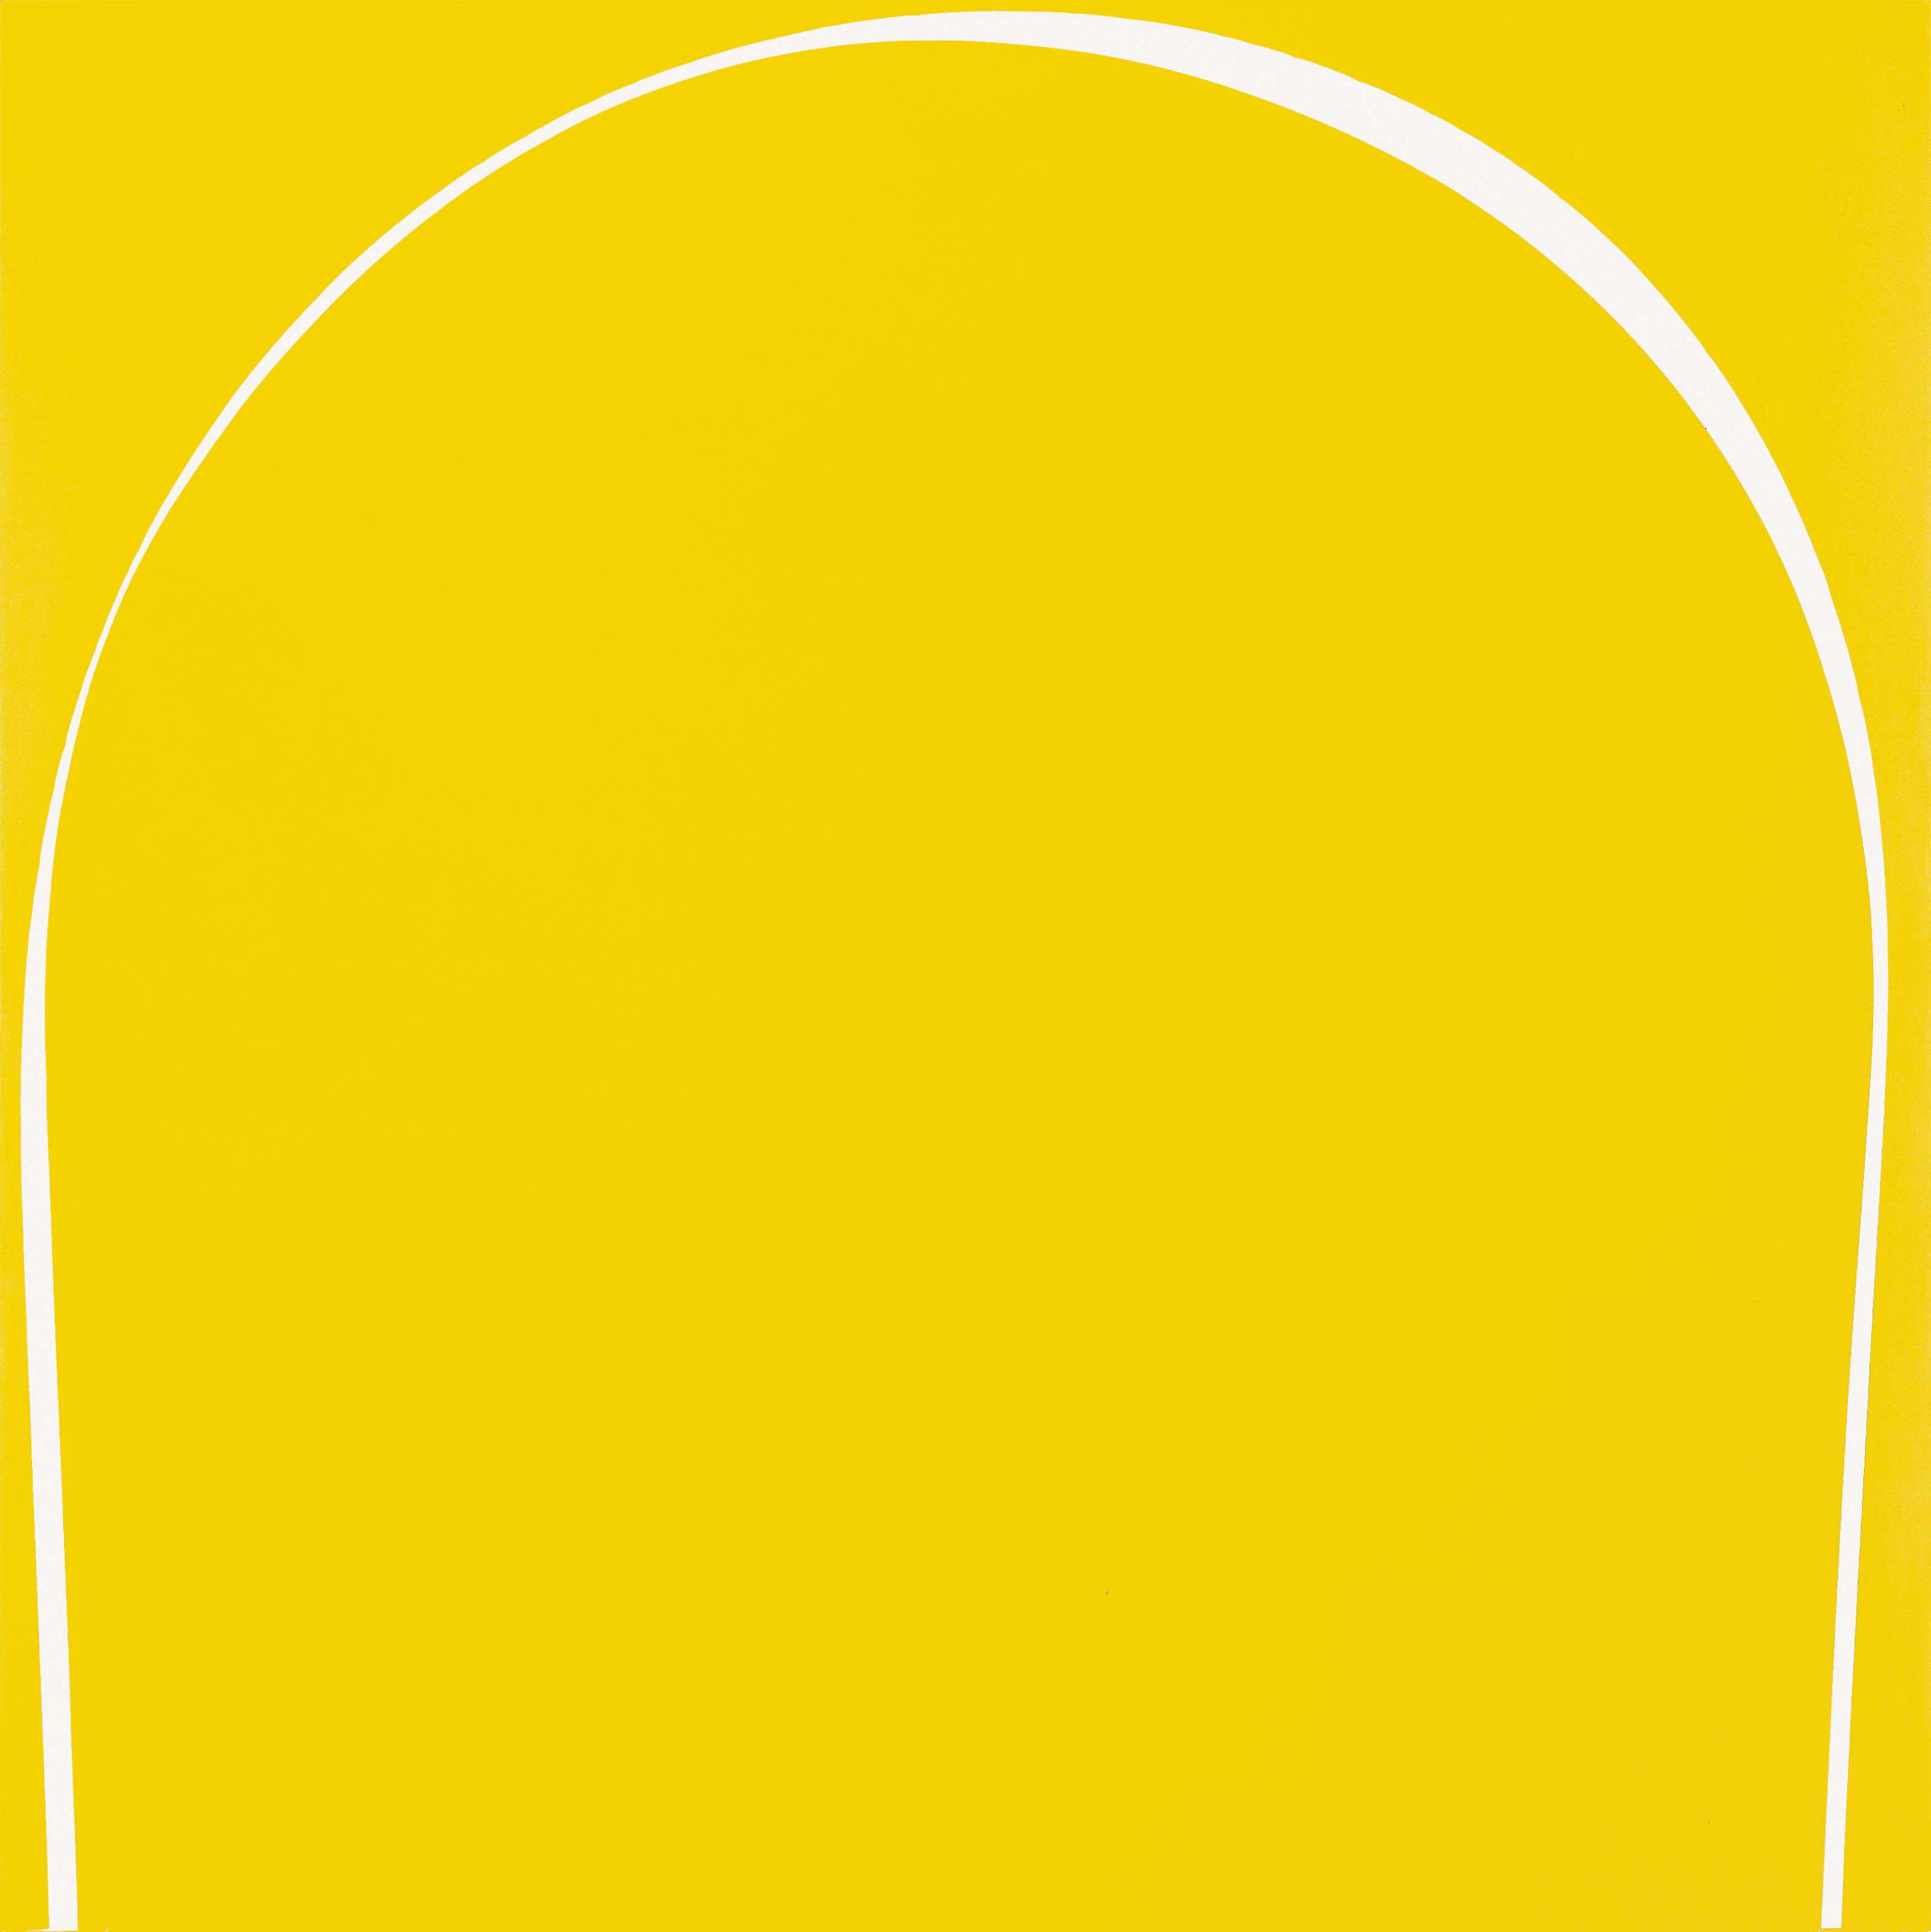 Poured Painting: Yellow, White, Yellow